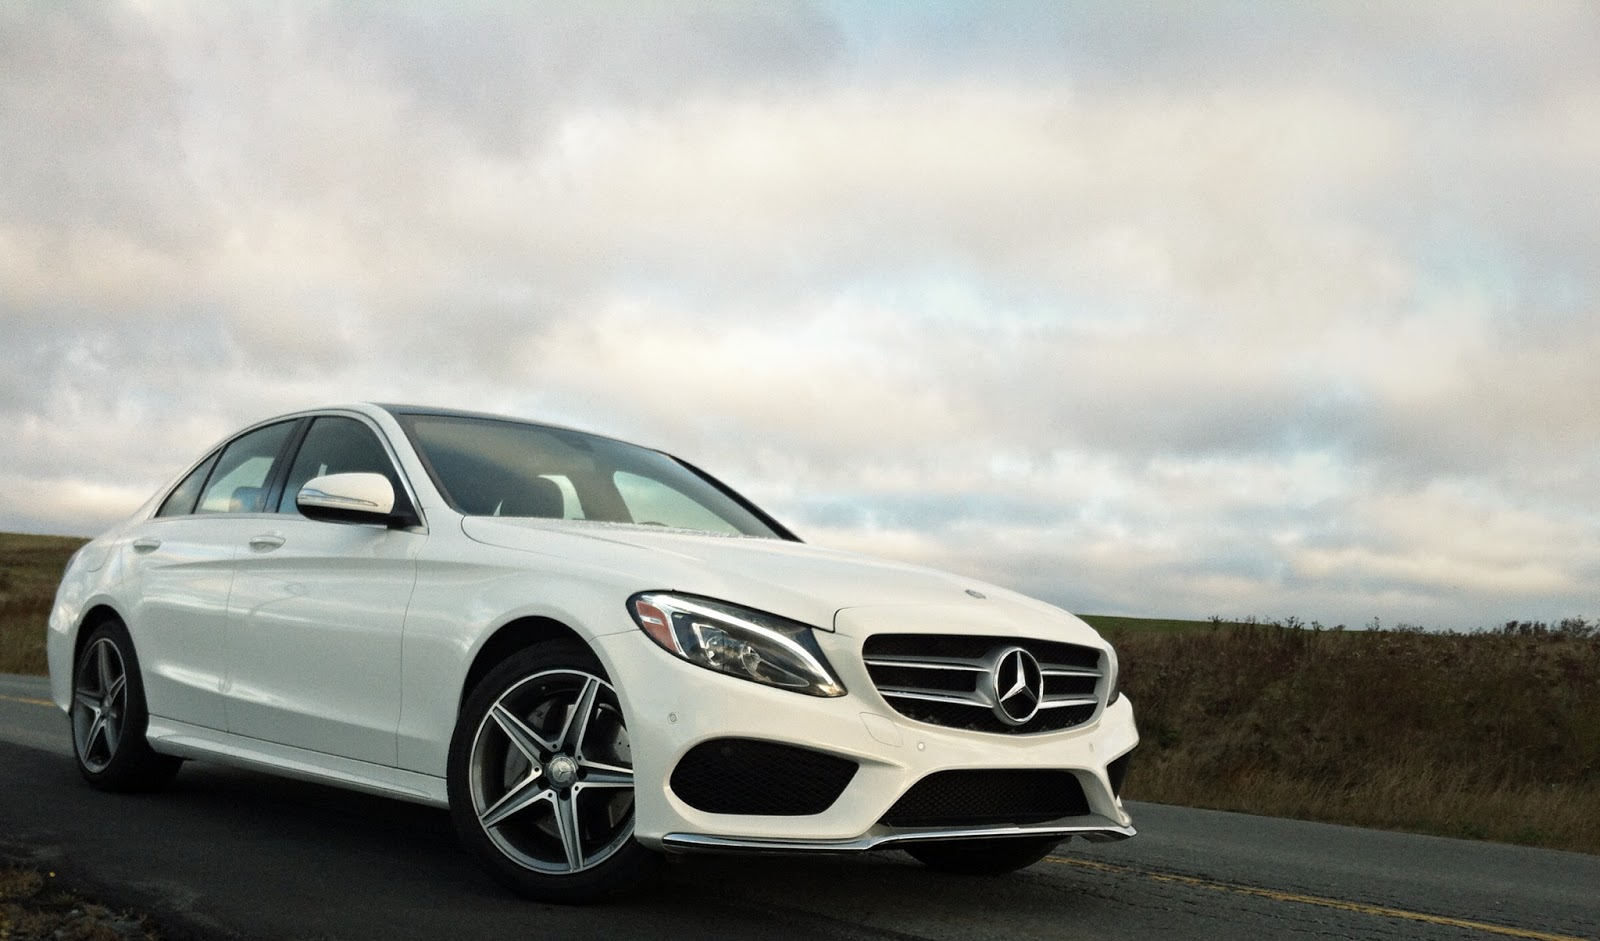 2015 mercedes benz c400 4matic review an actual luxury for Autos mercedes benz